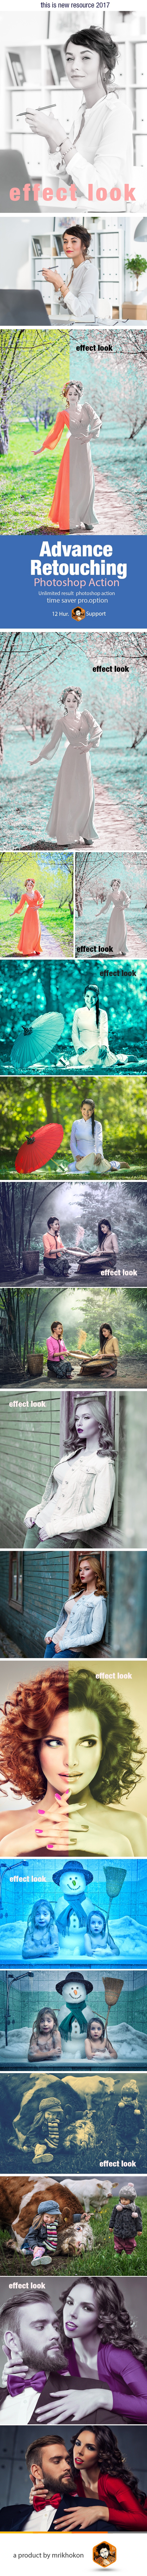 Advance Retouching - Actions Photoshop